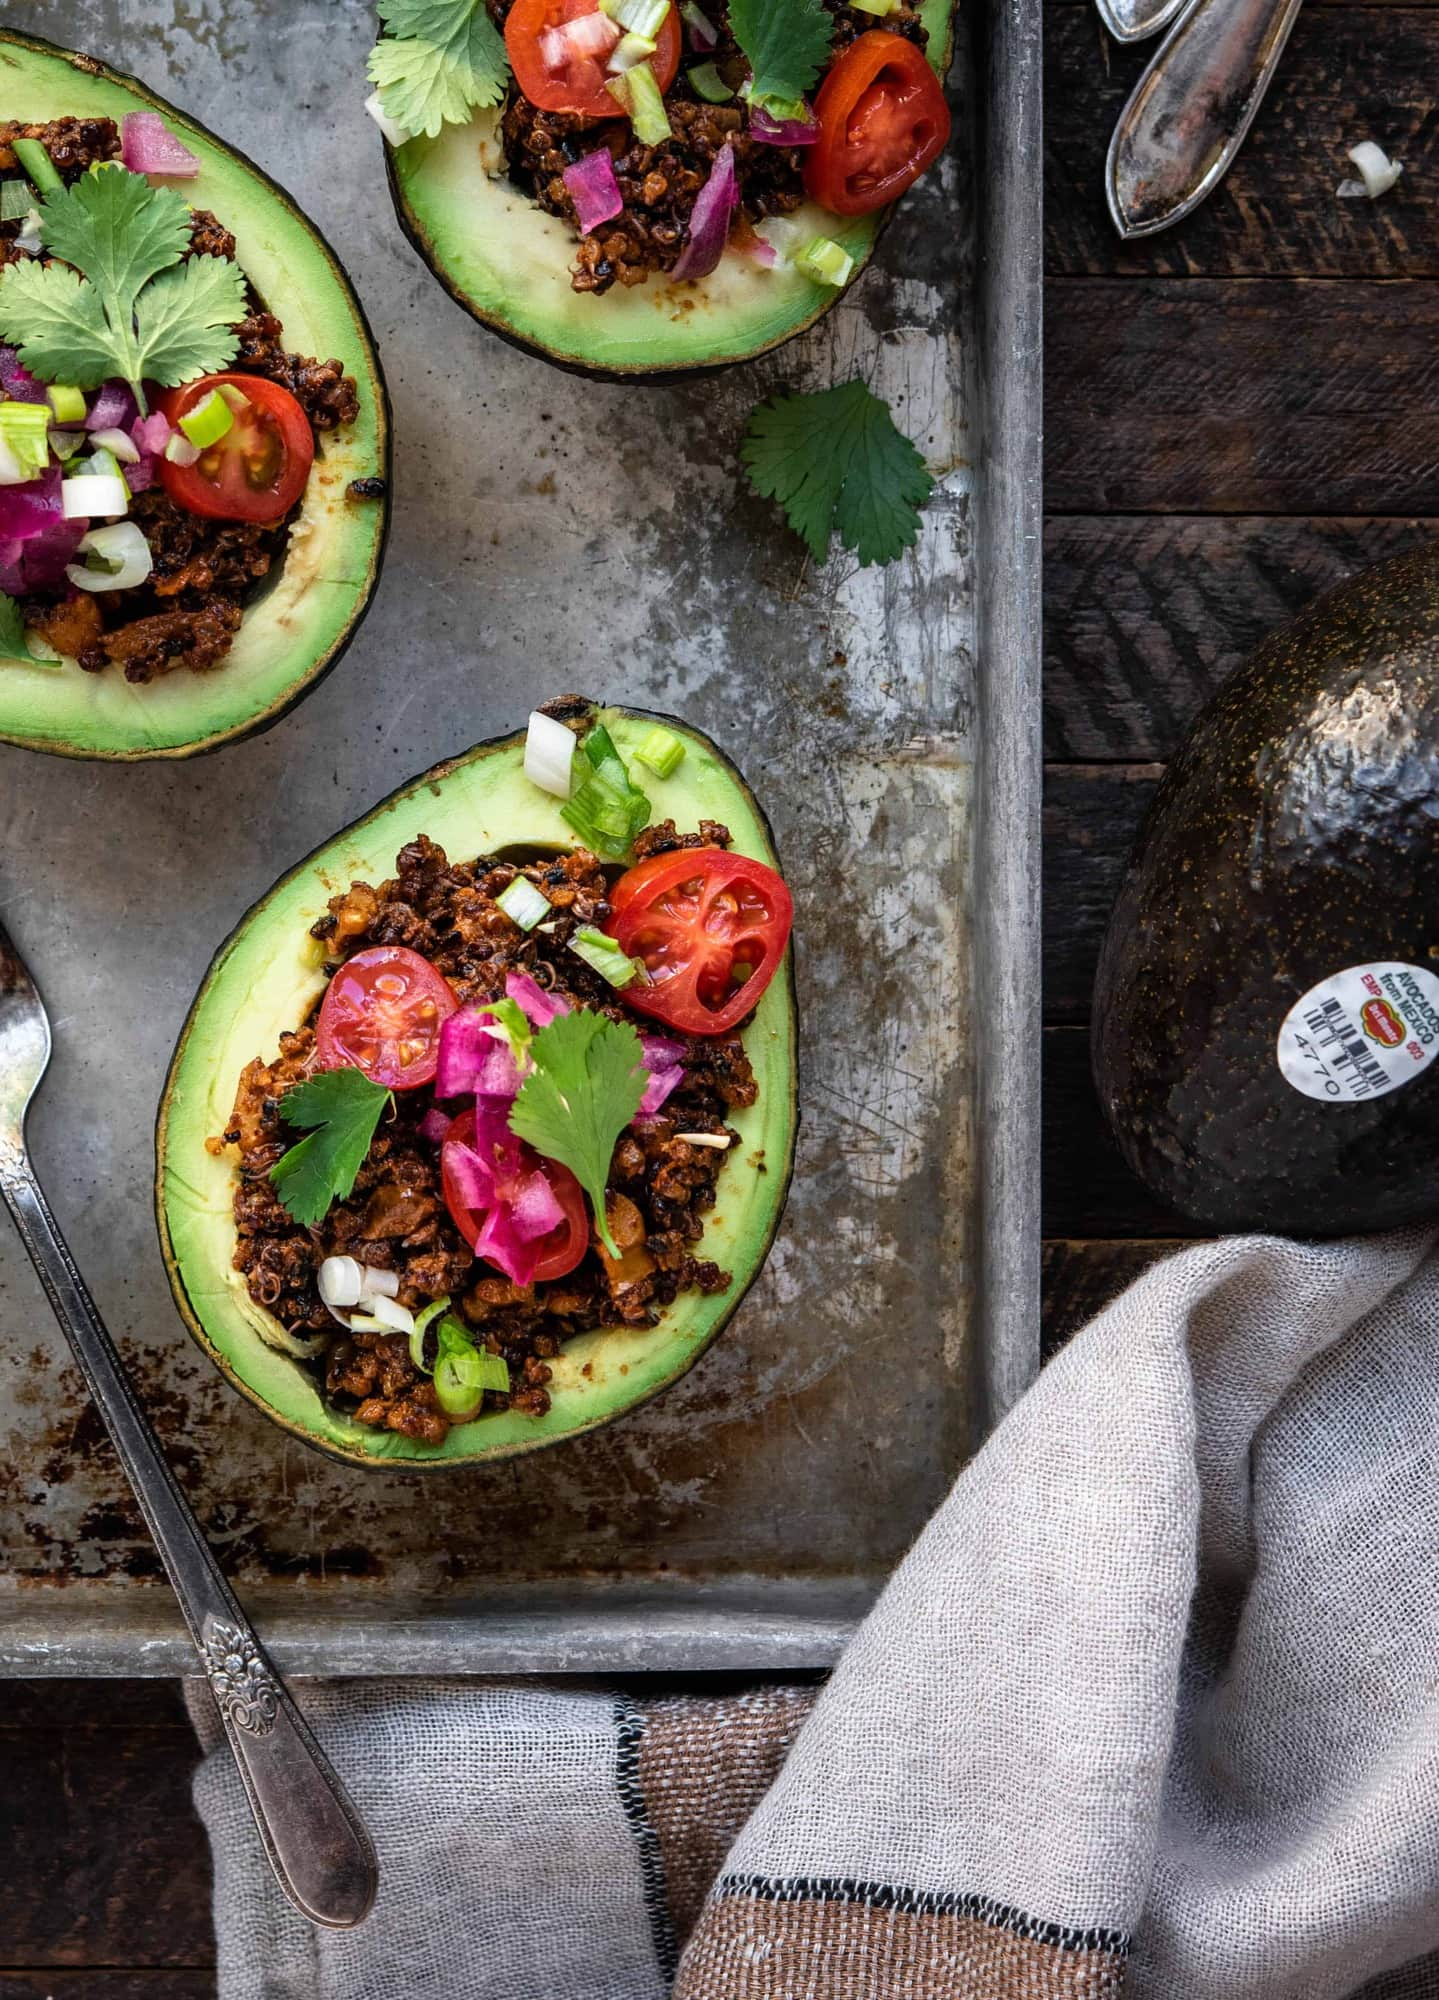 Overhead close up view of vegan taco stuffed avocados on a sheet pan on wood background